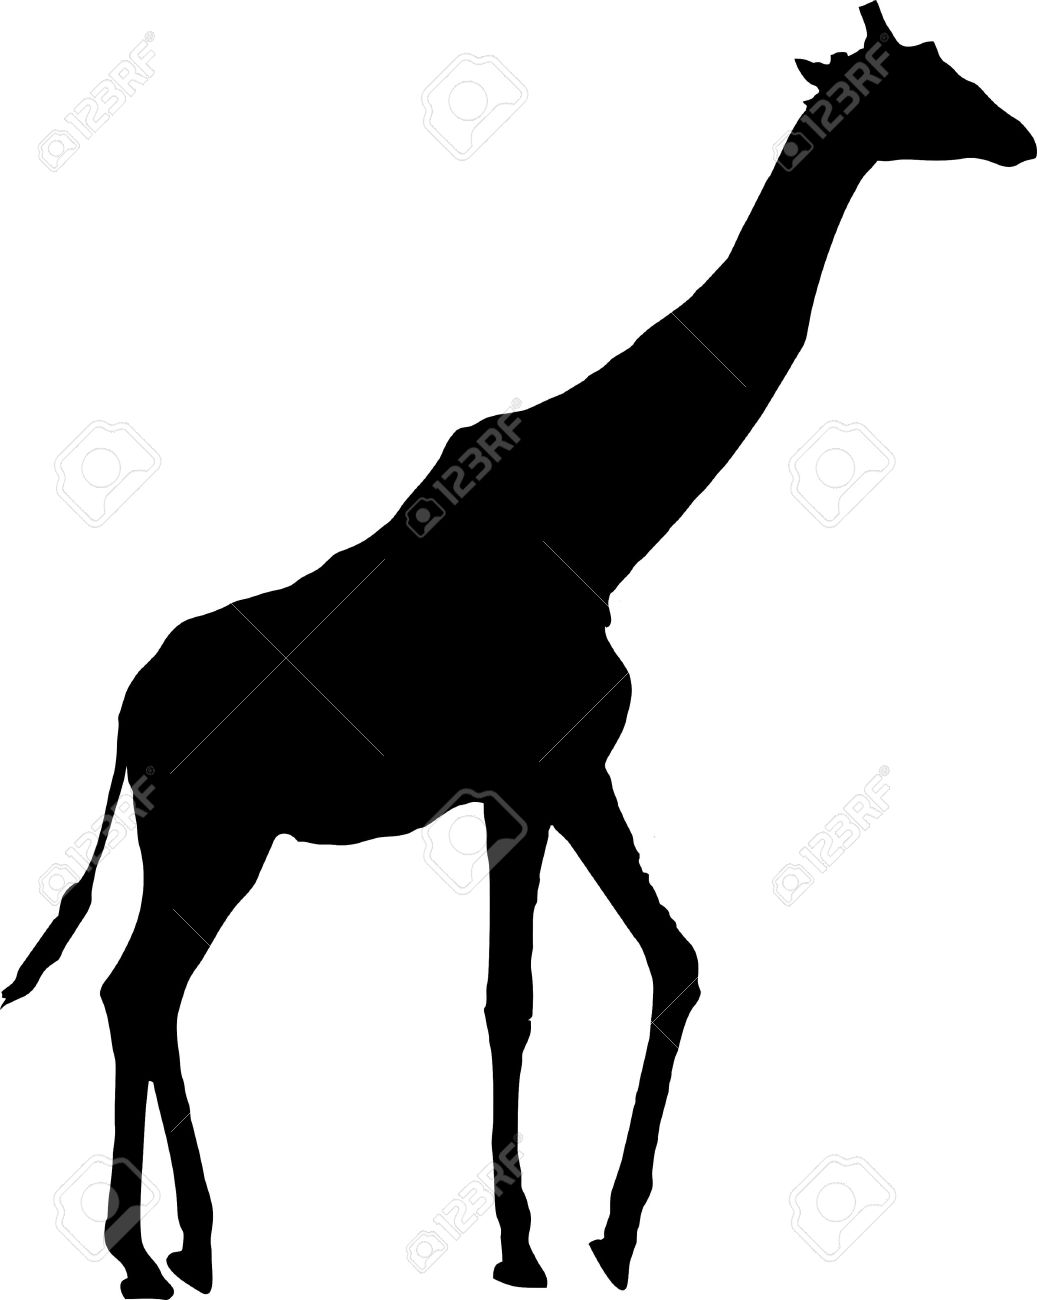 Giraffe Silhouette Isolated Vector Illus-Giraffe Silhouette Isolated Vector Illustration Royalty Free. Print Save this clip art-17